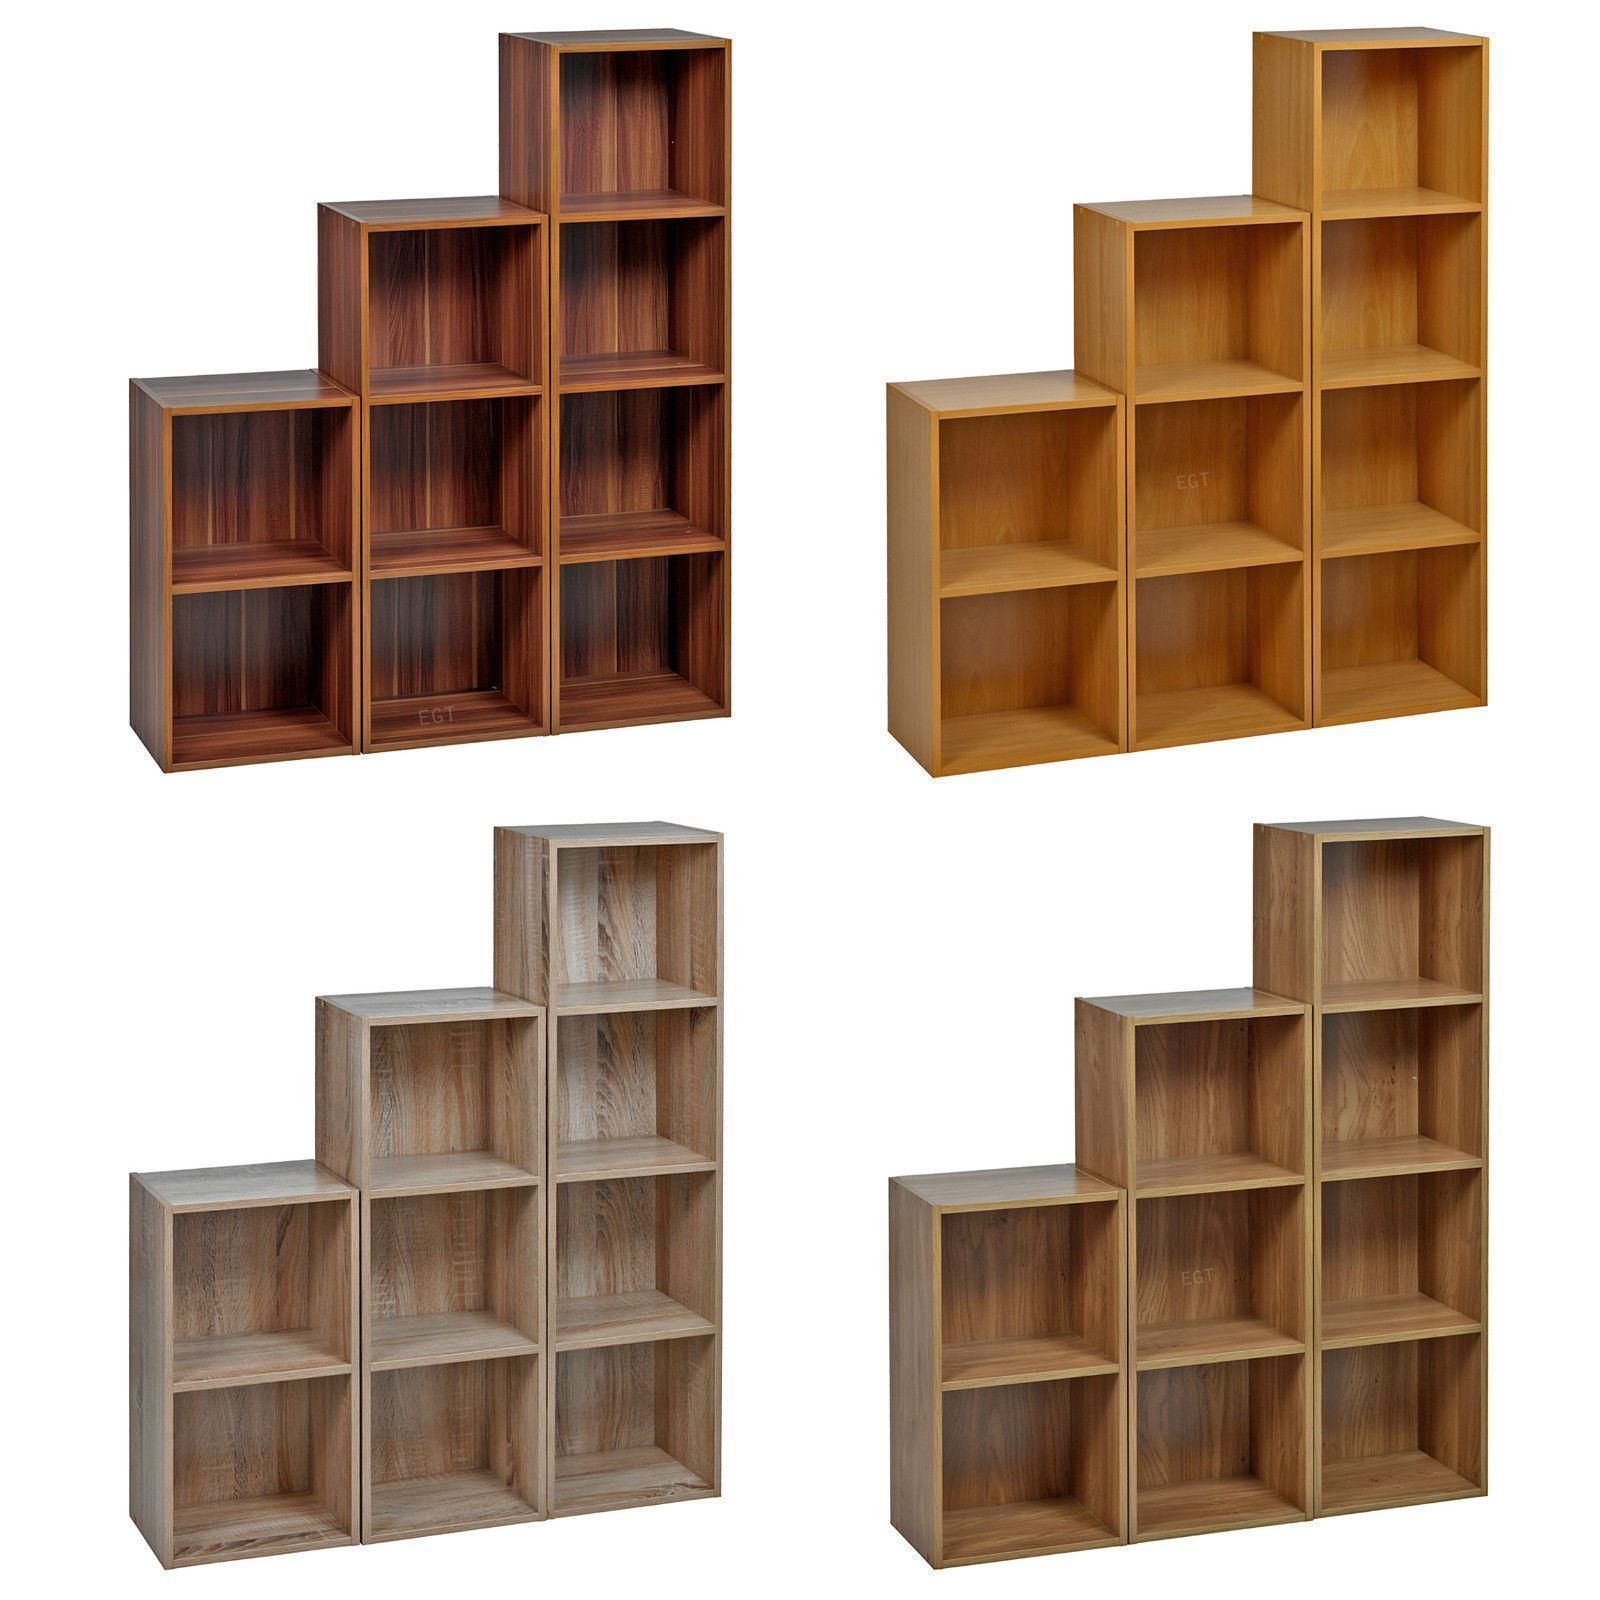 Details About 2 4 Tier Wooden Bookcase Shelving Bookshelf Storage Furniture Cube Display Unit